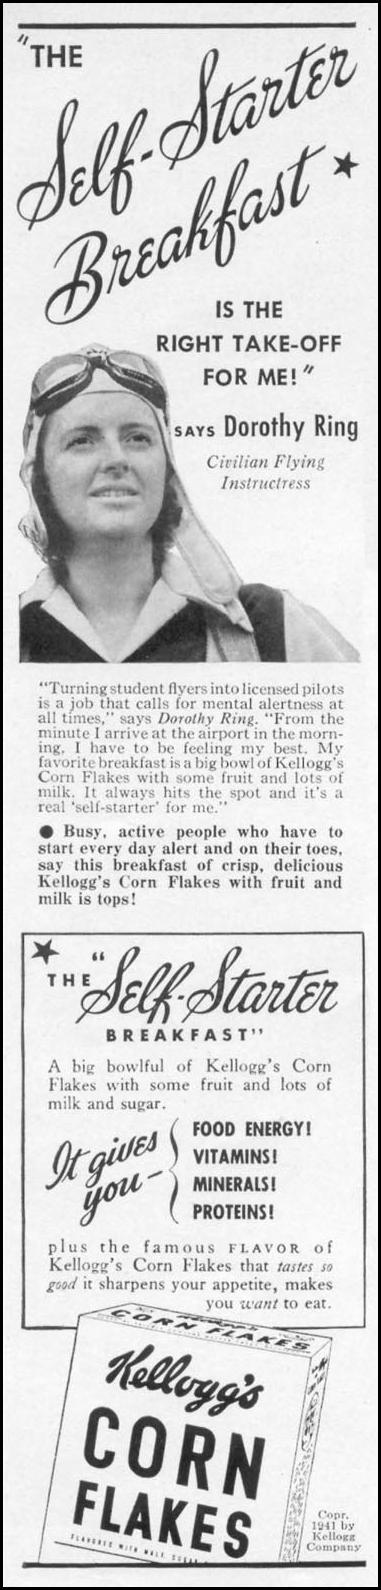 KELLOGG'S CORN FLAKES WOMAN'S DAY 04/01/1941 p. 2